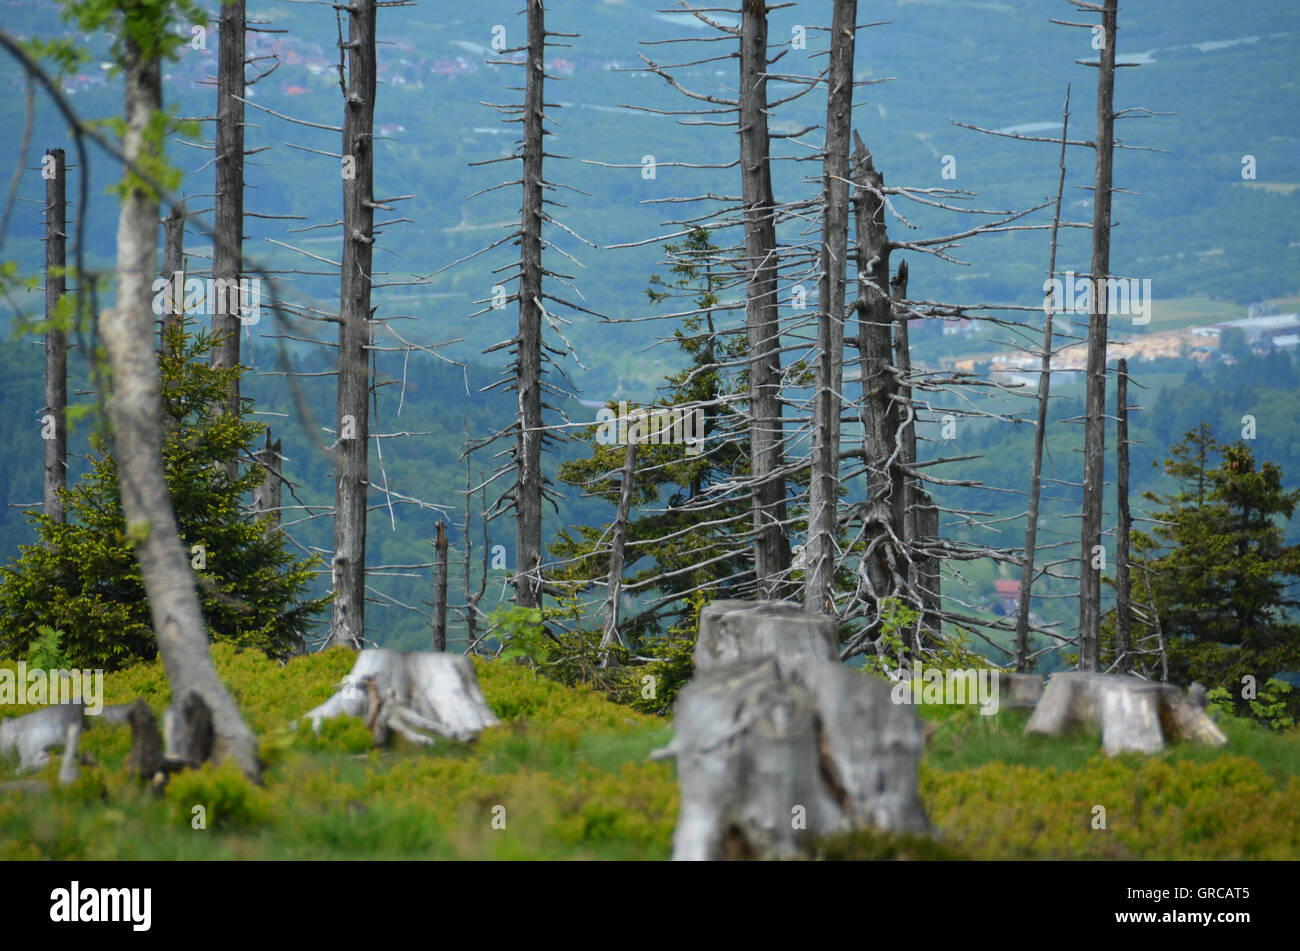 Tree Skeleton, Forest Decline - Stock Image